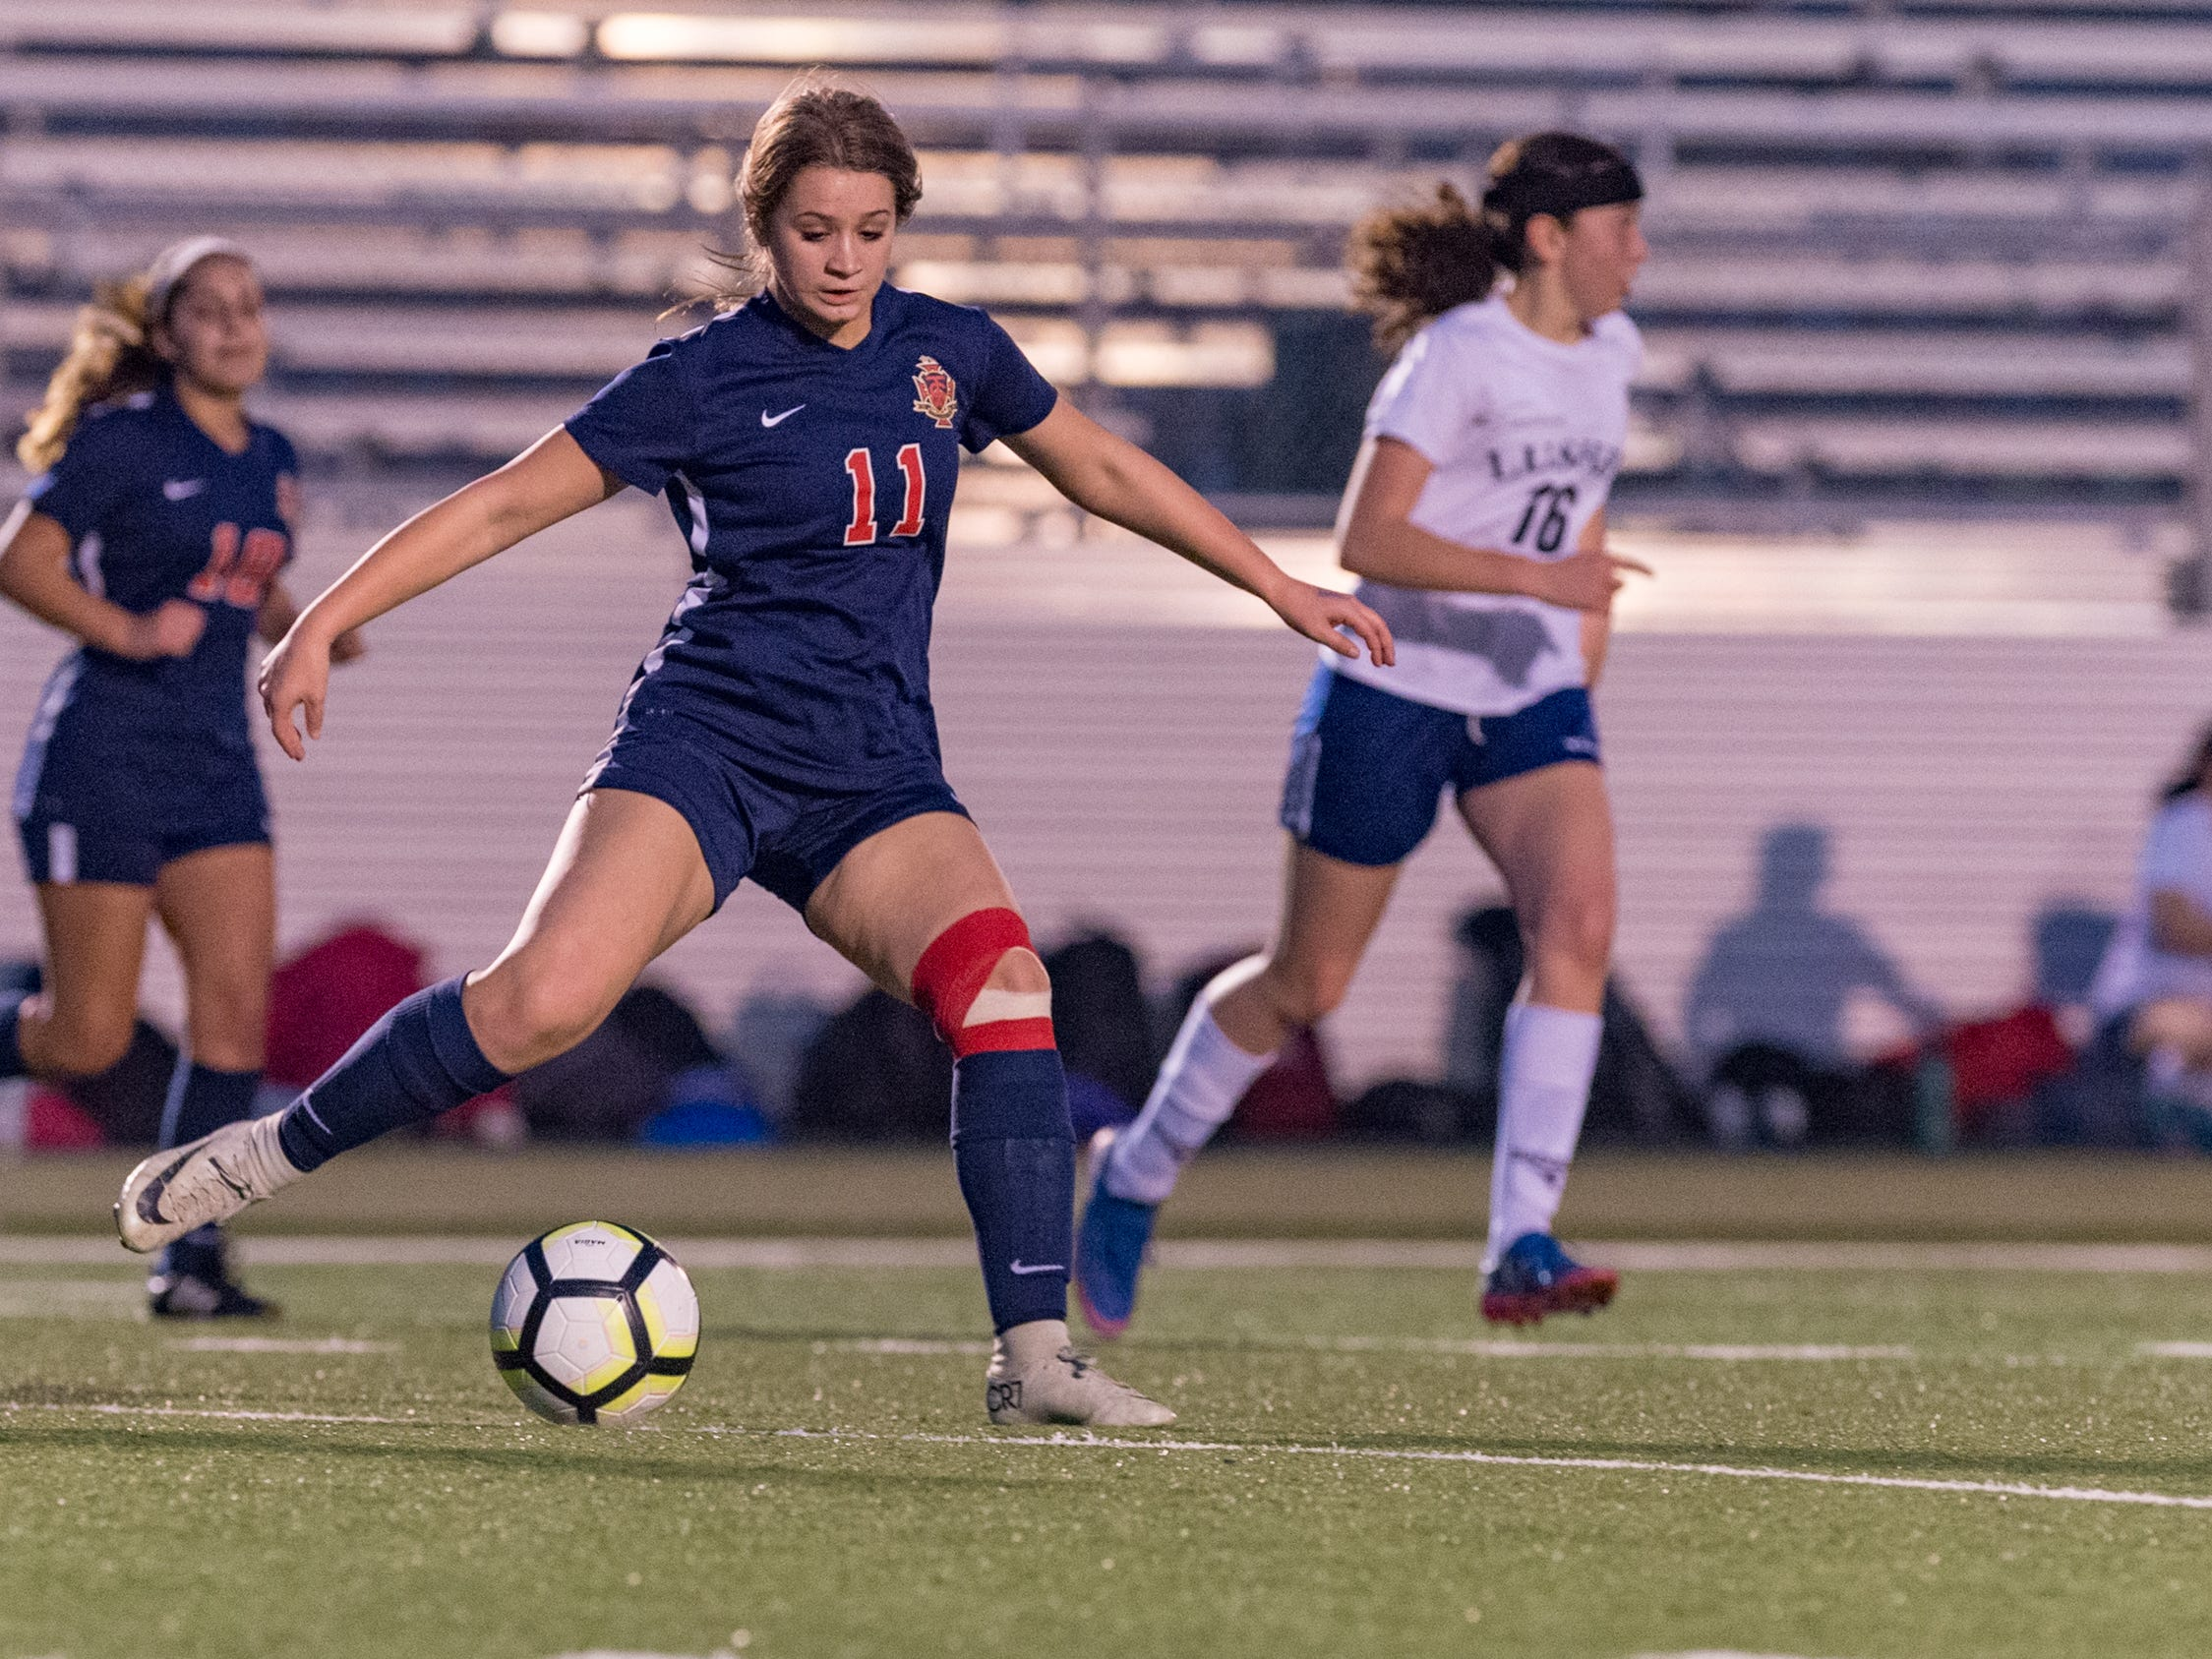 Macy Dupuis passes the ball as Teurlings Catholic shuts out Lutcher 8-0 in the second round of the LHSAA soccer playoffs.  Tuesday, Feb. 5, 2019.